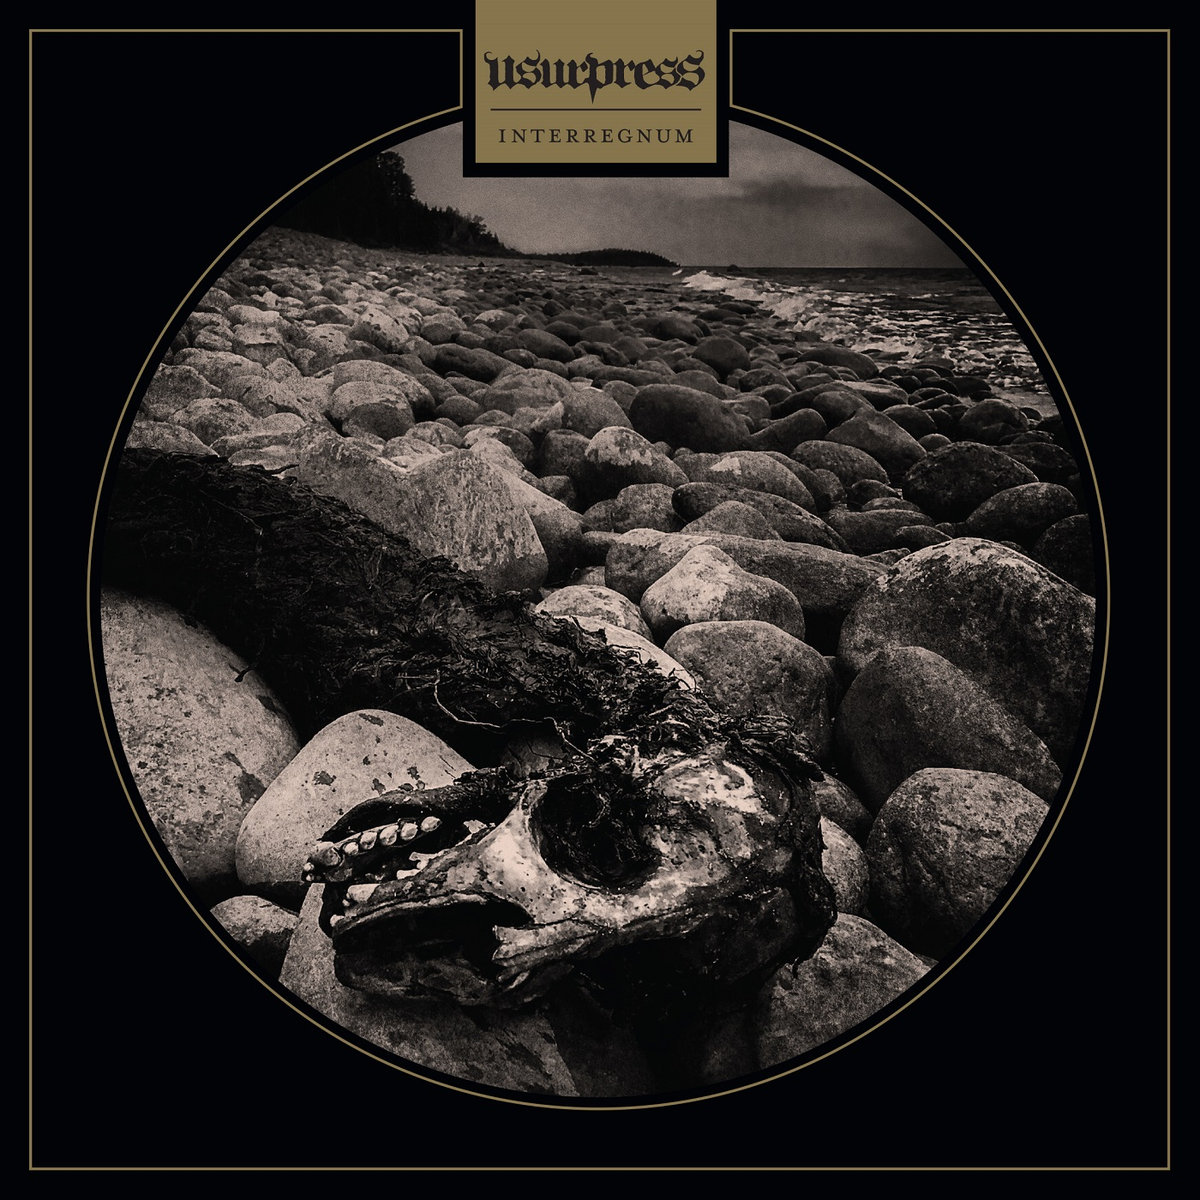 10. Usurpress - Interrgnum - Sampling a vast array of influences and styles ranging from krautrock to old school death metal, at its core, Interrgnum is a dark, brooding album where Usurpress craft original doom metal material with melancholic leads, epic melodies, and grimy undertones.